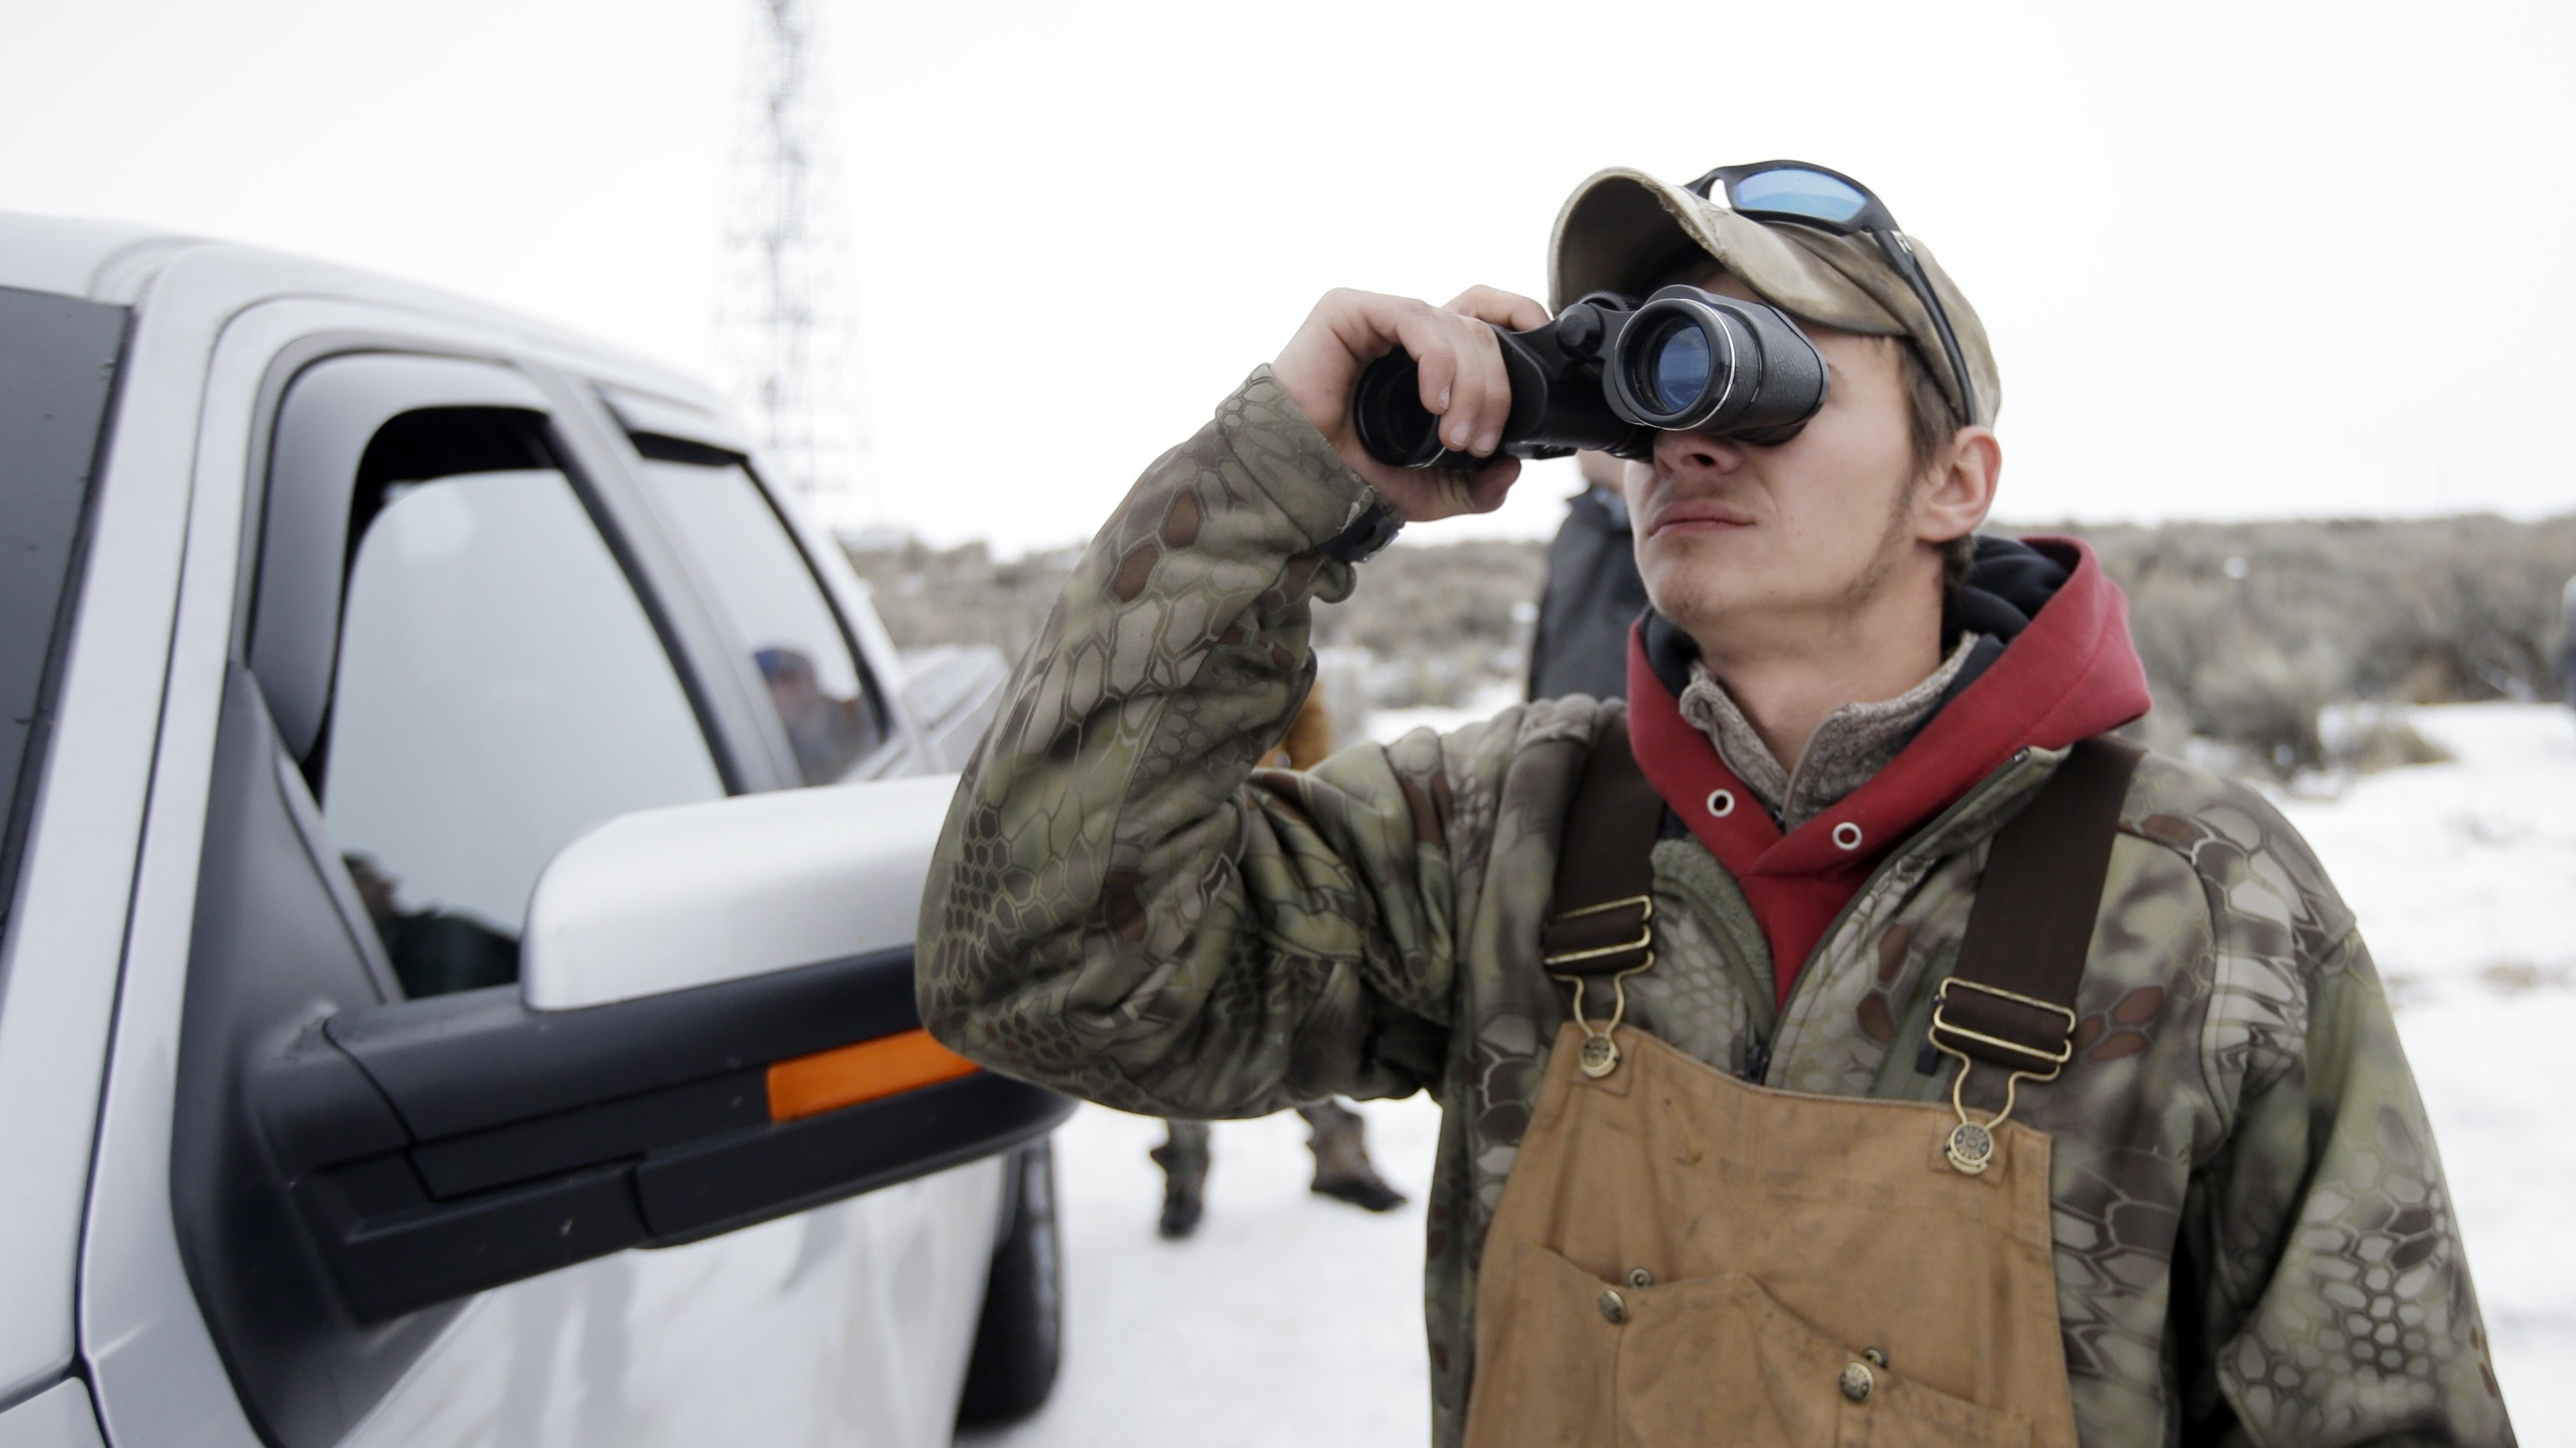 Birdwatchers Have Their Feathers Ruffled Over Oregon Occupiers